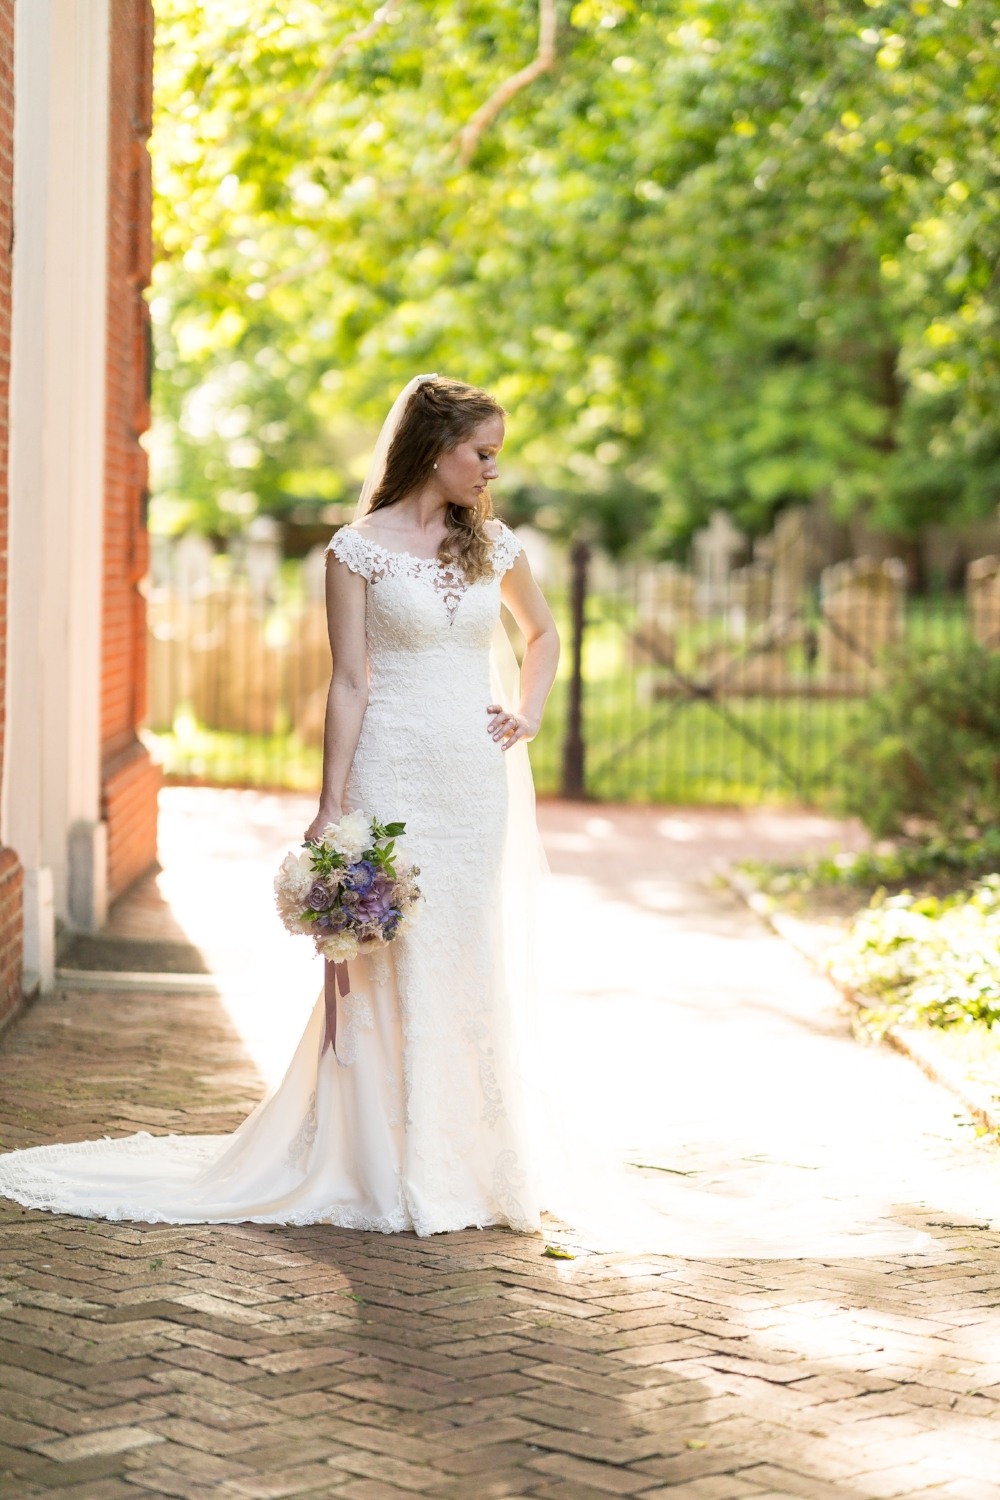 Wedding Gown by  Stella York ; Hair/Makeup by  Dina Alon Studio ; flowers by  Petit Jardin en Ville